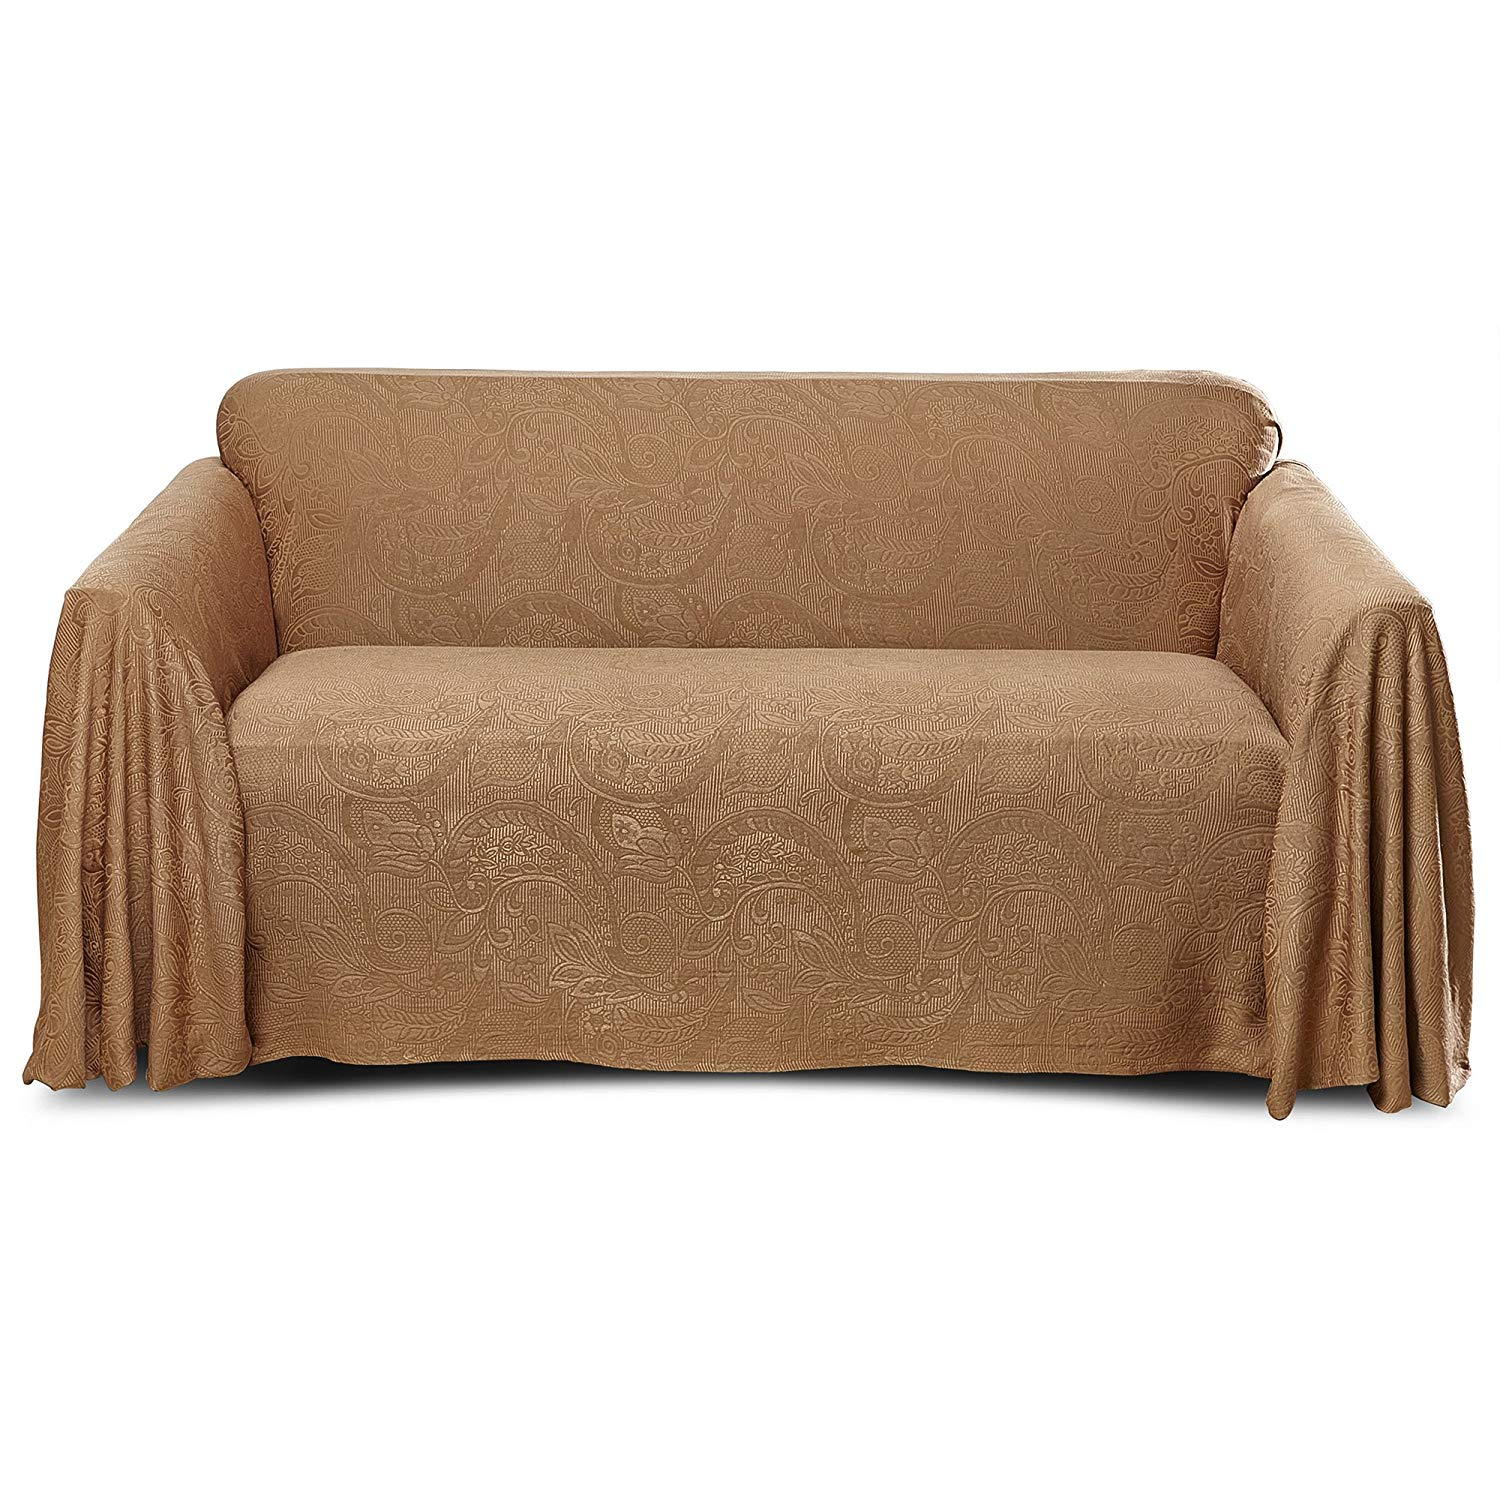 Stylemaster-Alexandria-Large-Sofa-Furniture-Throw